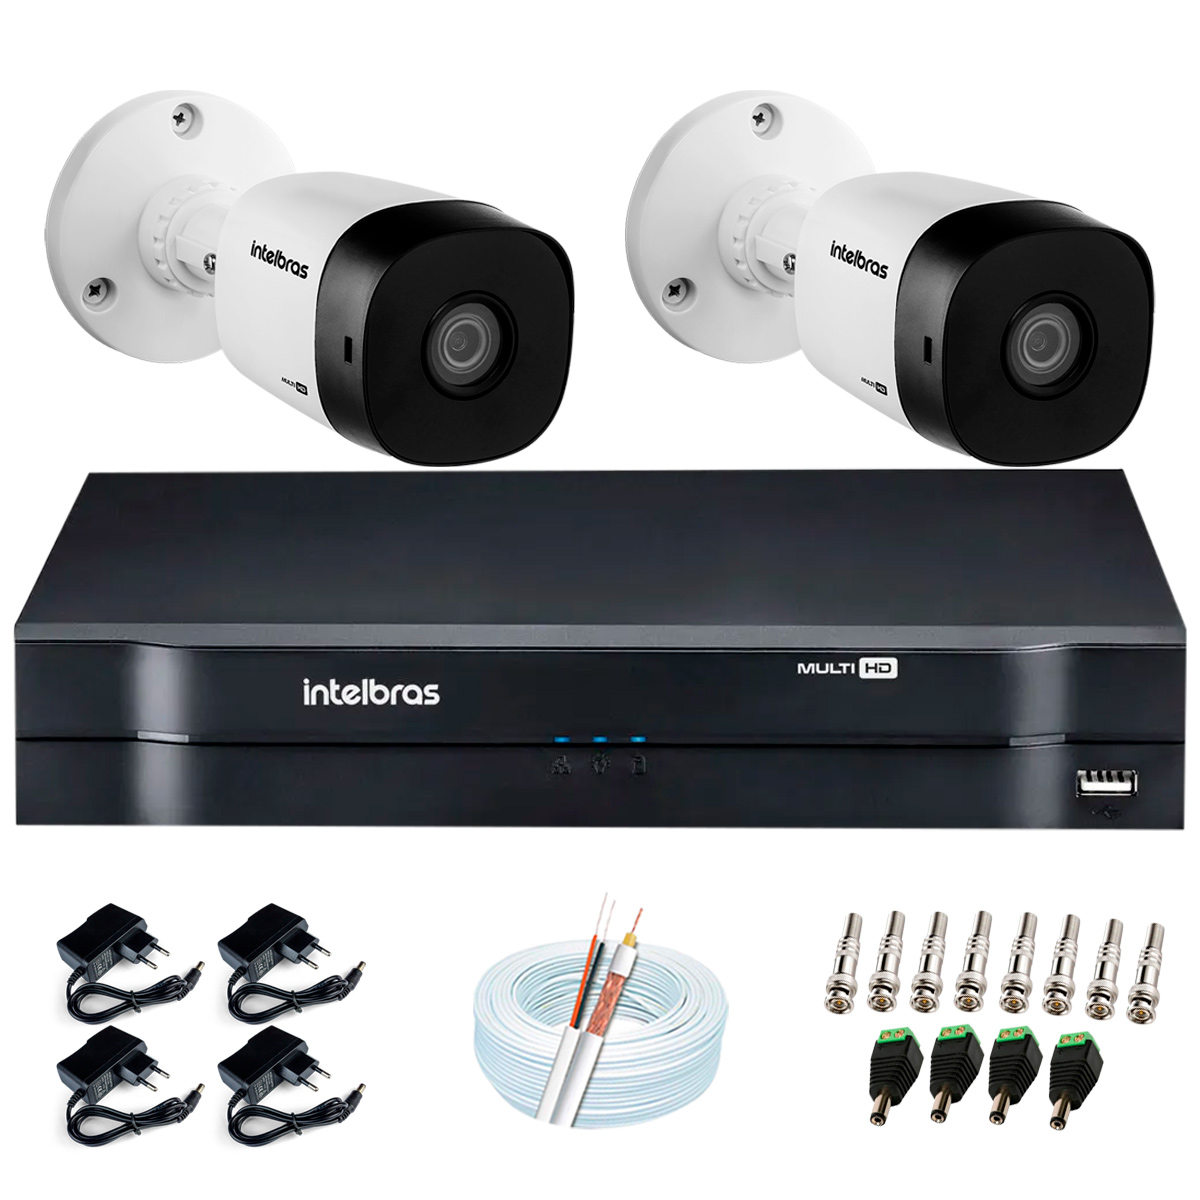 kit-6-cameras-de-seguranca-full-hd-intelbras-vhd-1220-b-g6-dvr-intelbras-full-hd-mhdx-3108-de-8-canais-acessorios